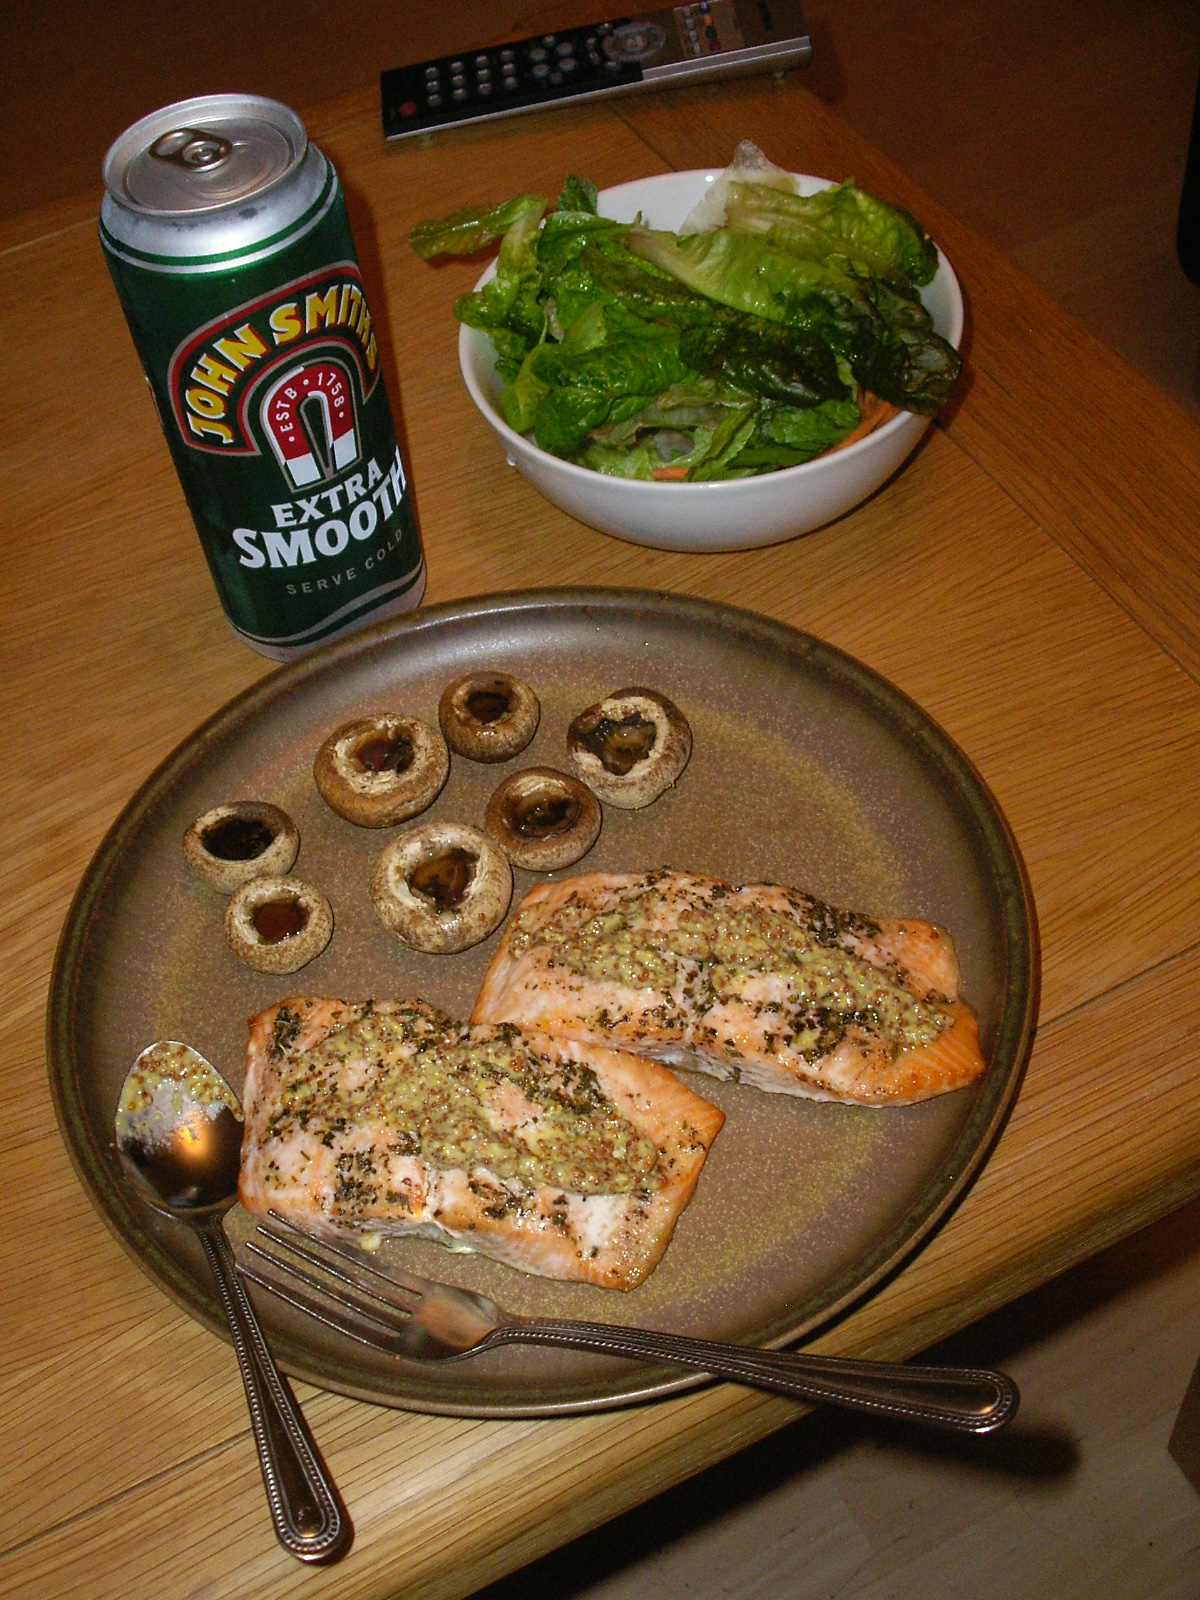 Salmon Steak with Grilled Mushroom & Salad